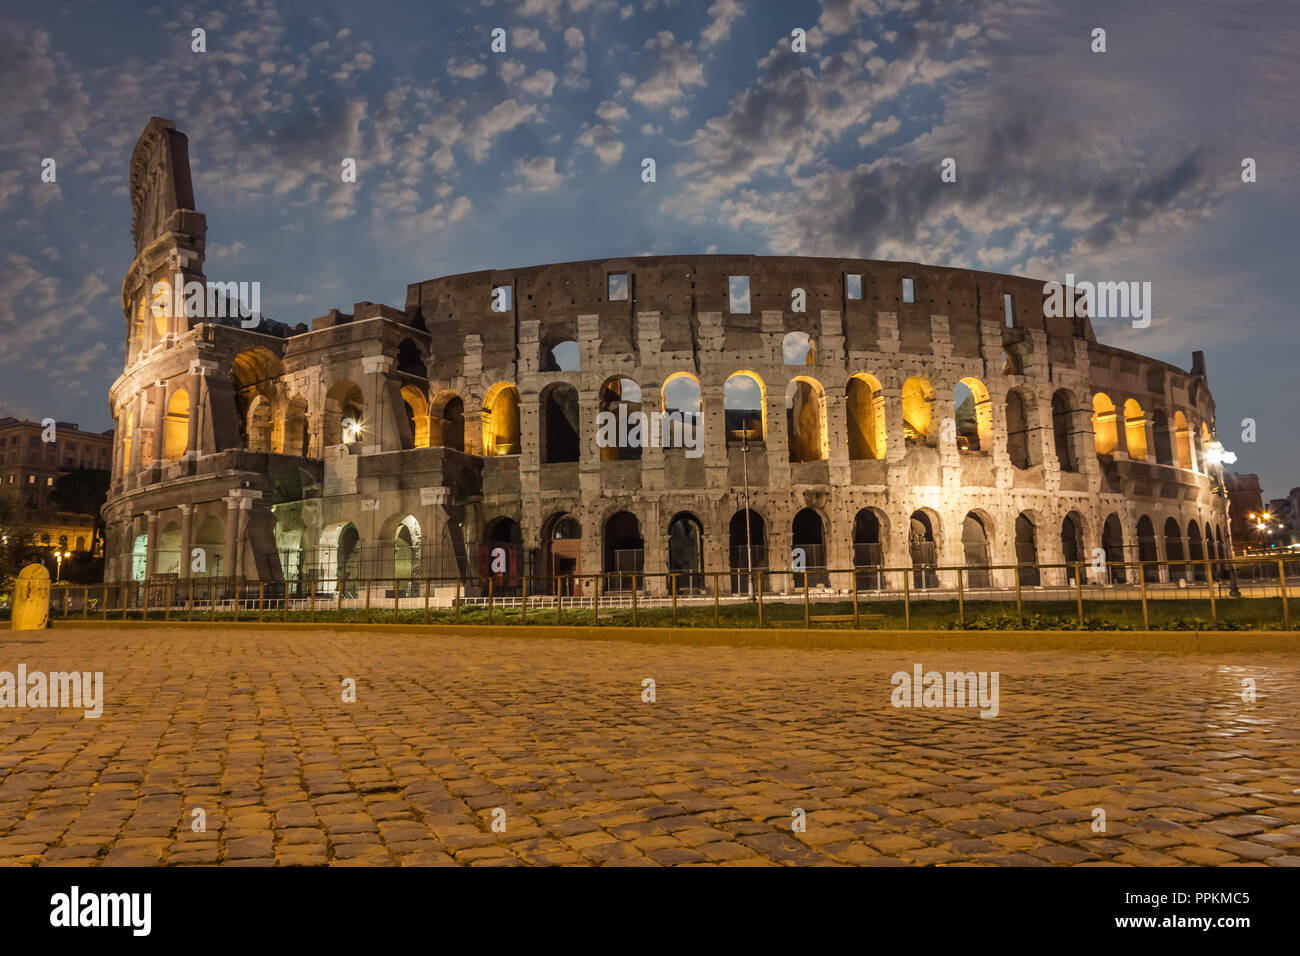 The Coliseum in the clouds in twilight - Stock Image